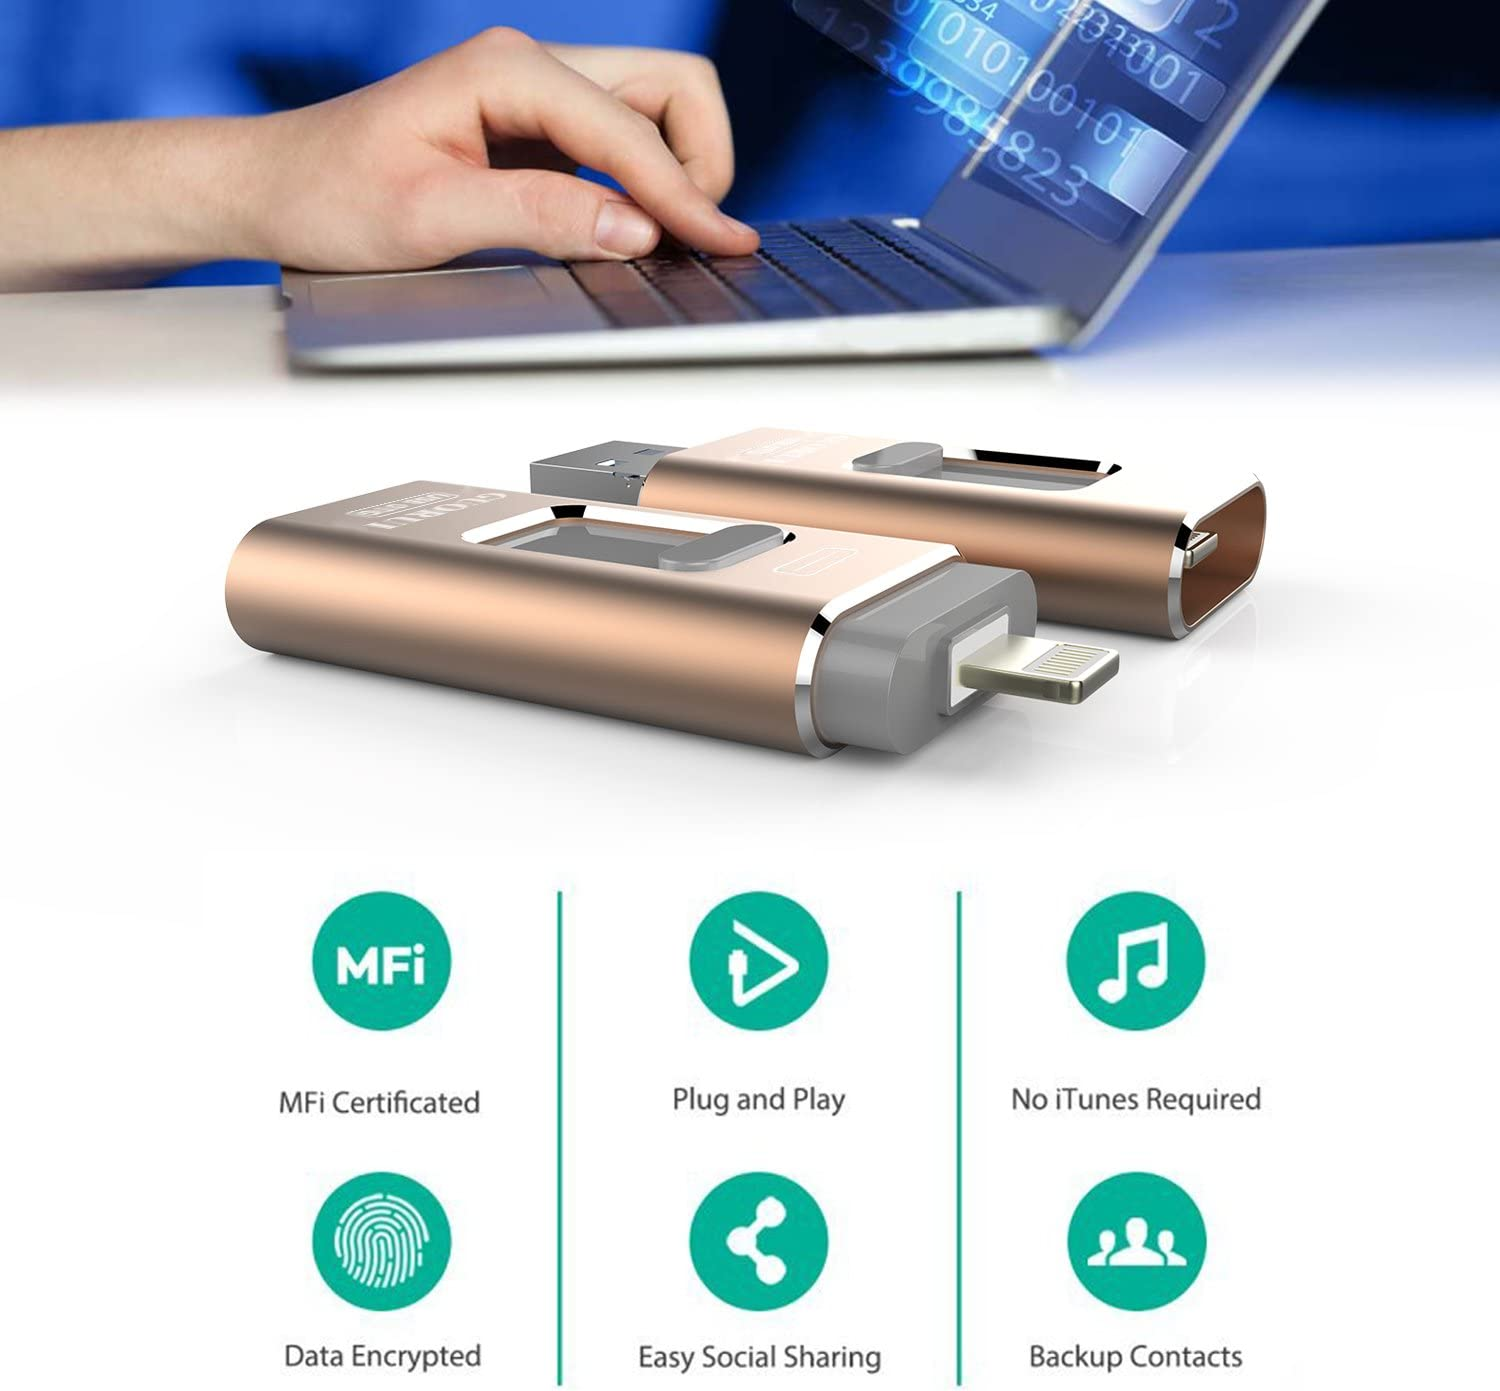 USB Flash Drive 64GB for iPhone Photo Stick Backup iPhone Memory Stick External Storage Thumb Drive for iPhone 11 Pro X XR XS MAX 6 7 8 Plus iPad Pro PC Android Password Touch ID Protected Flash Gold